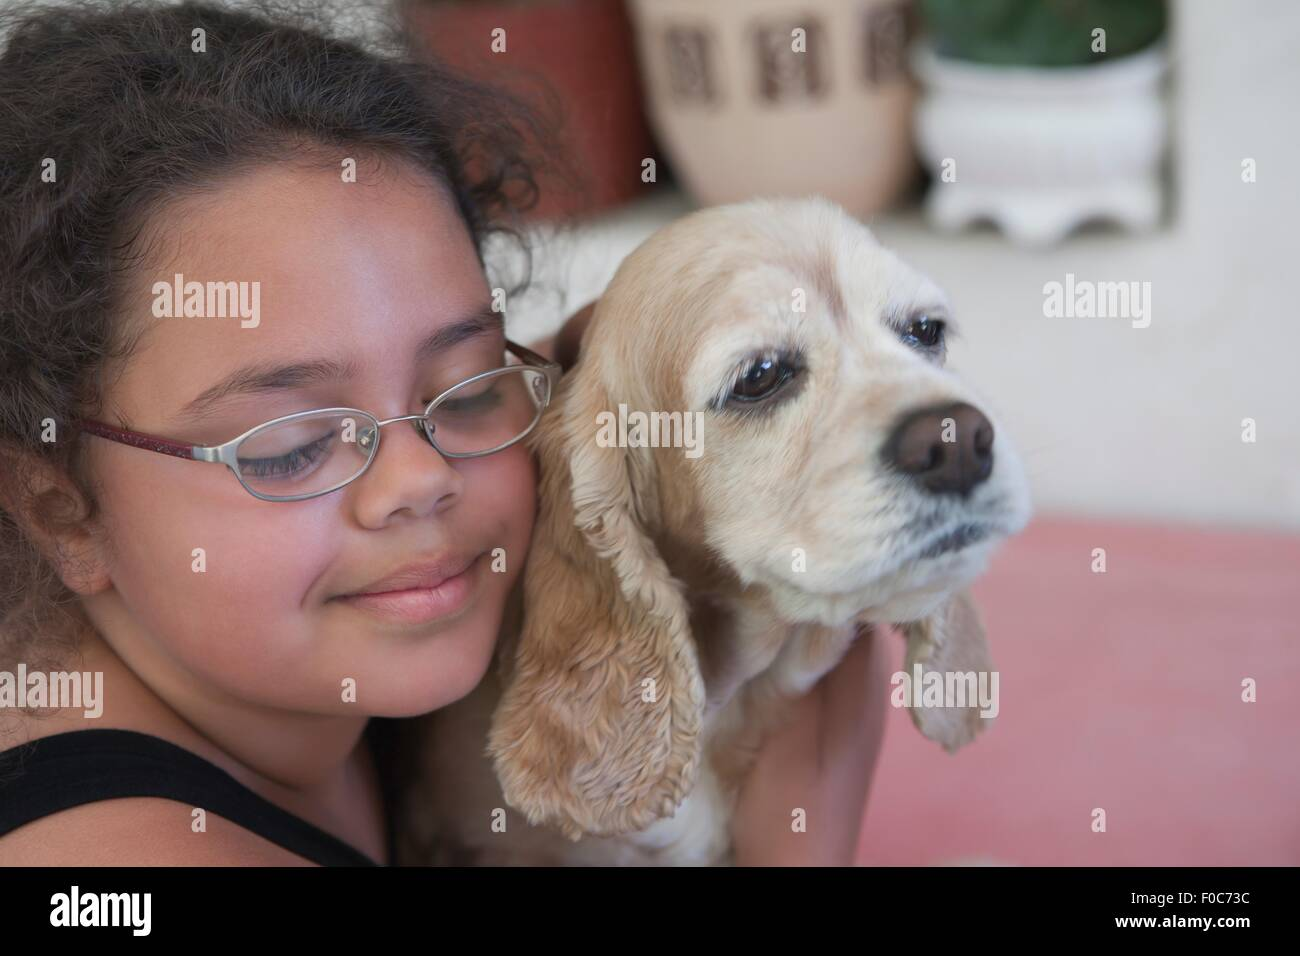 Young girl hugging dog, close-up - Stock Image